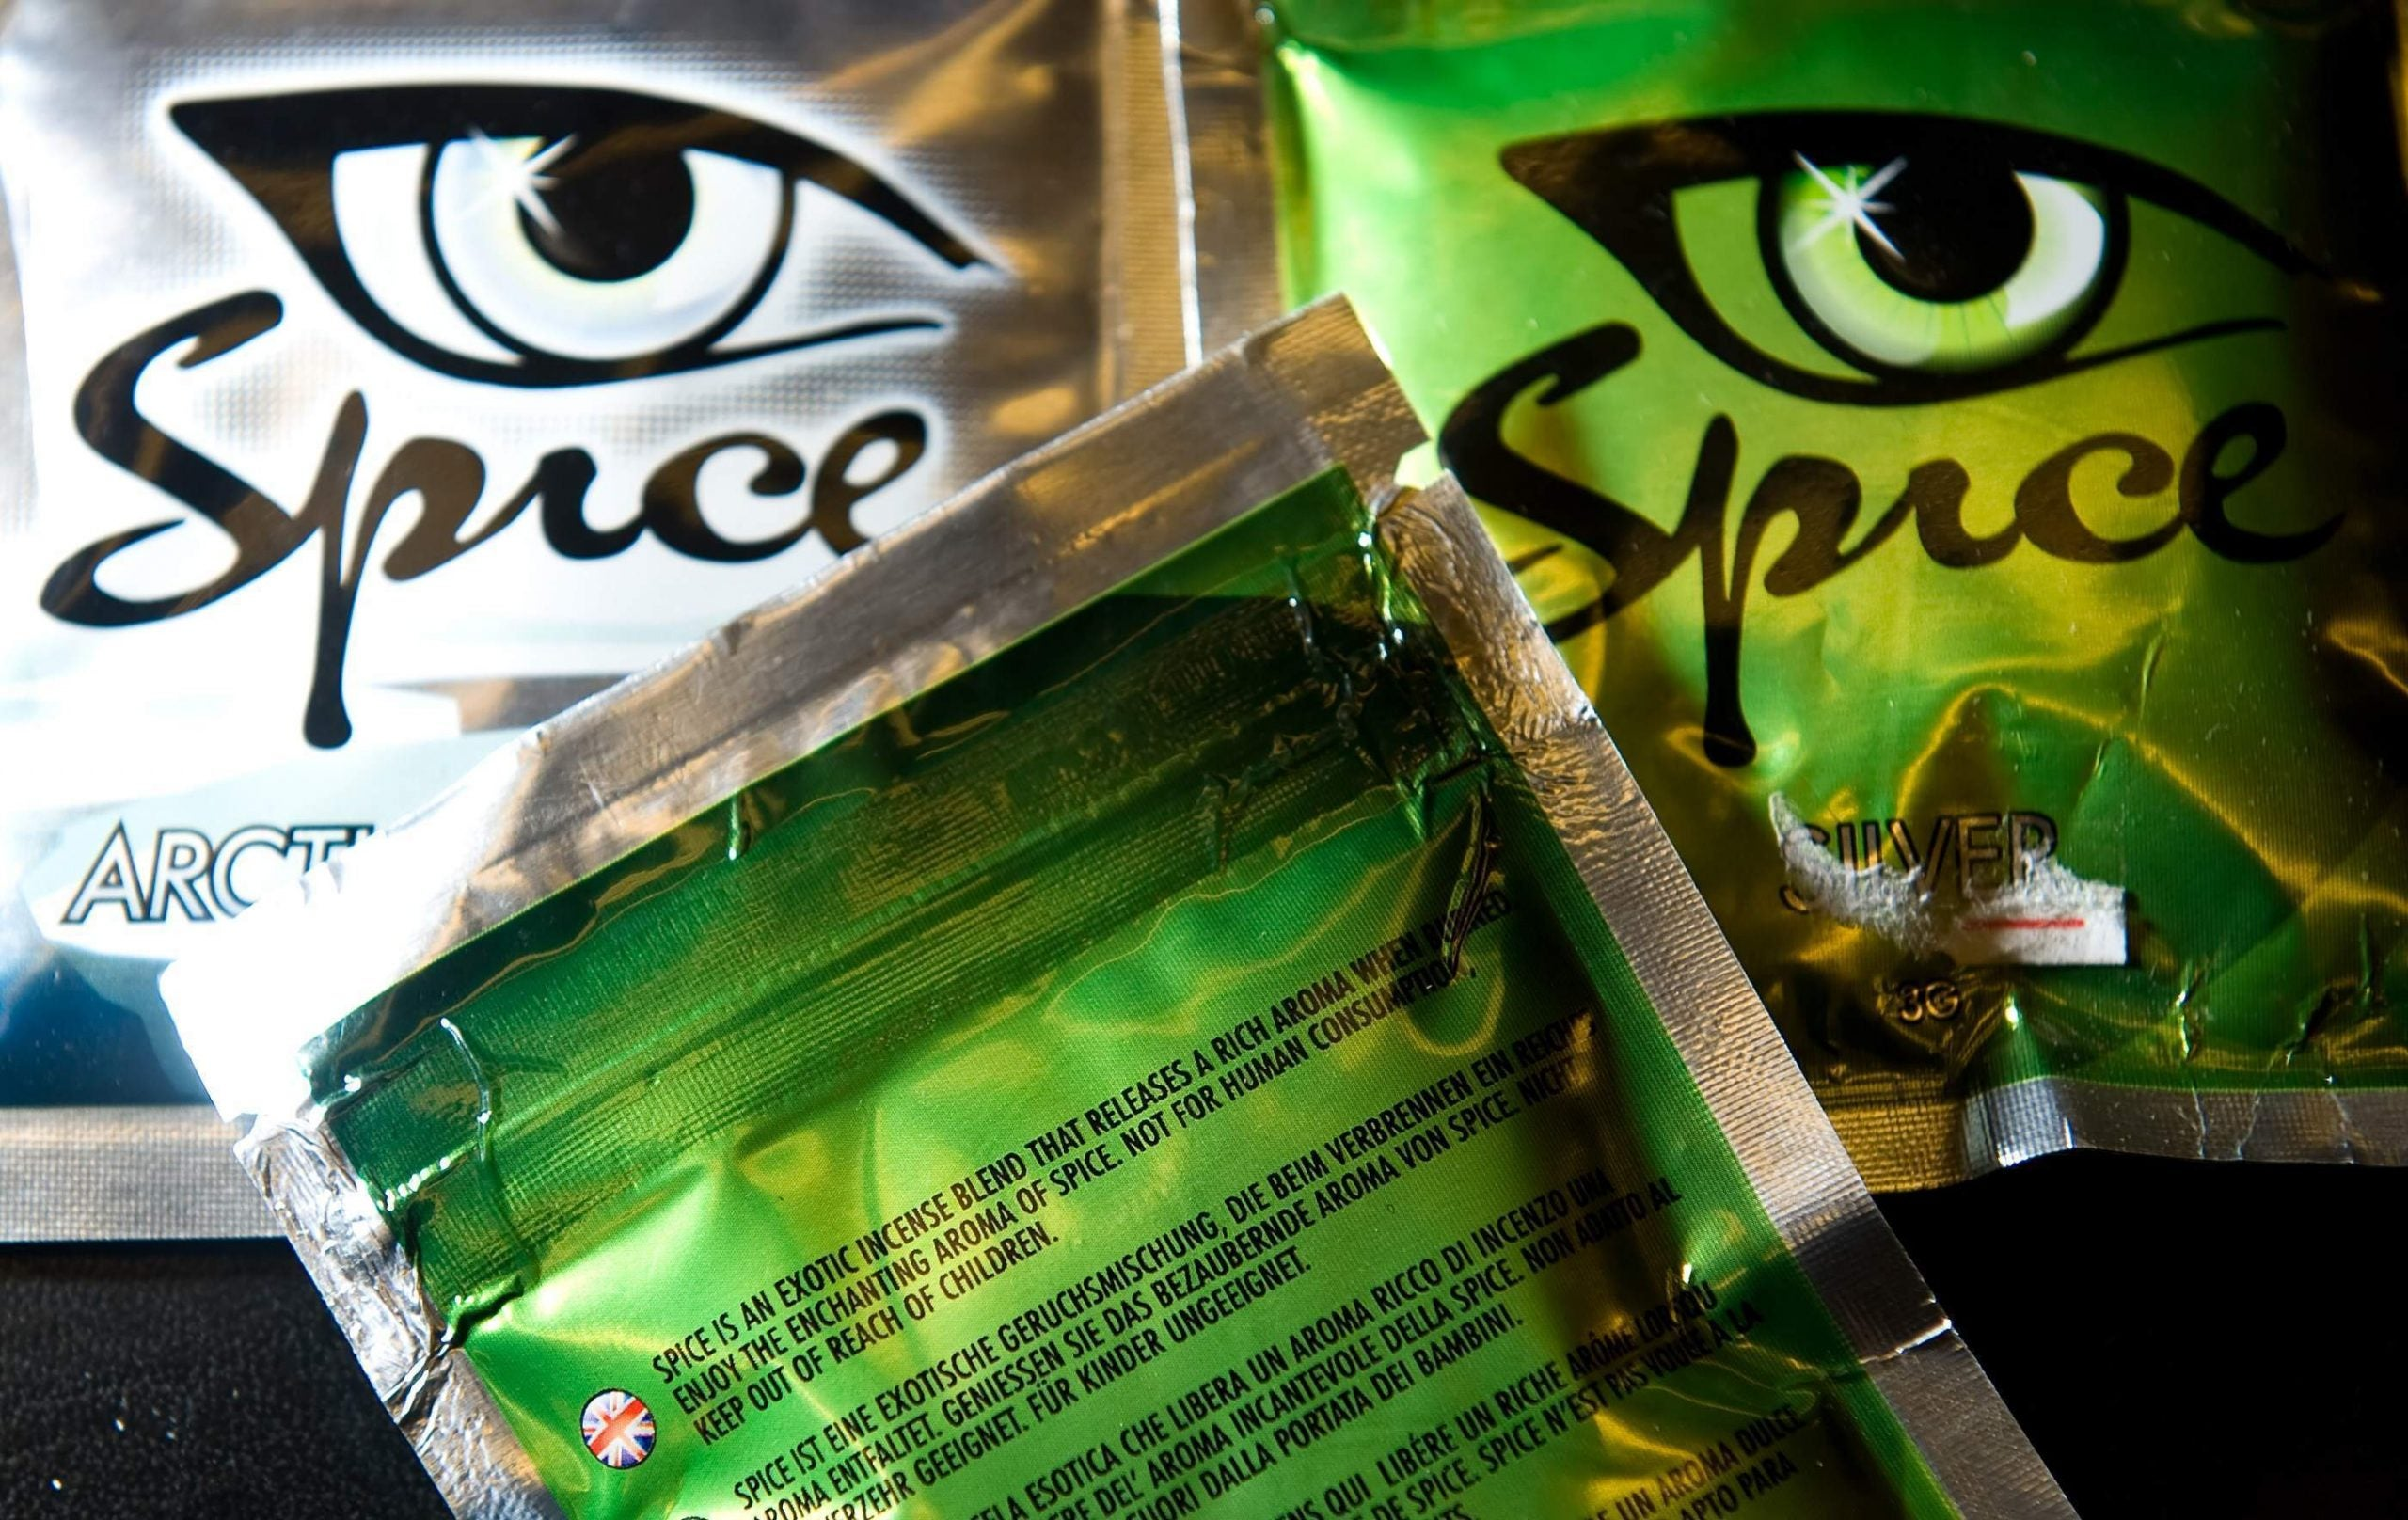 The spice epidemic shows why we should legalise herbal cannabis